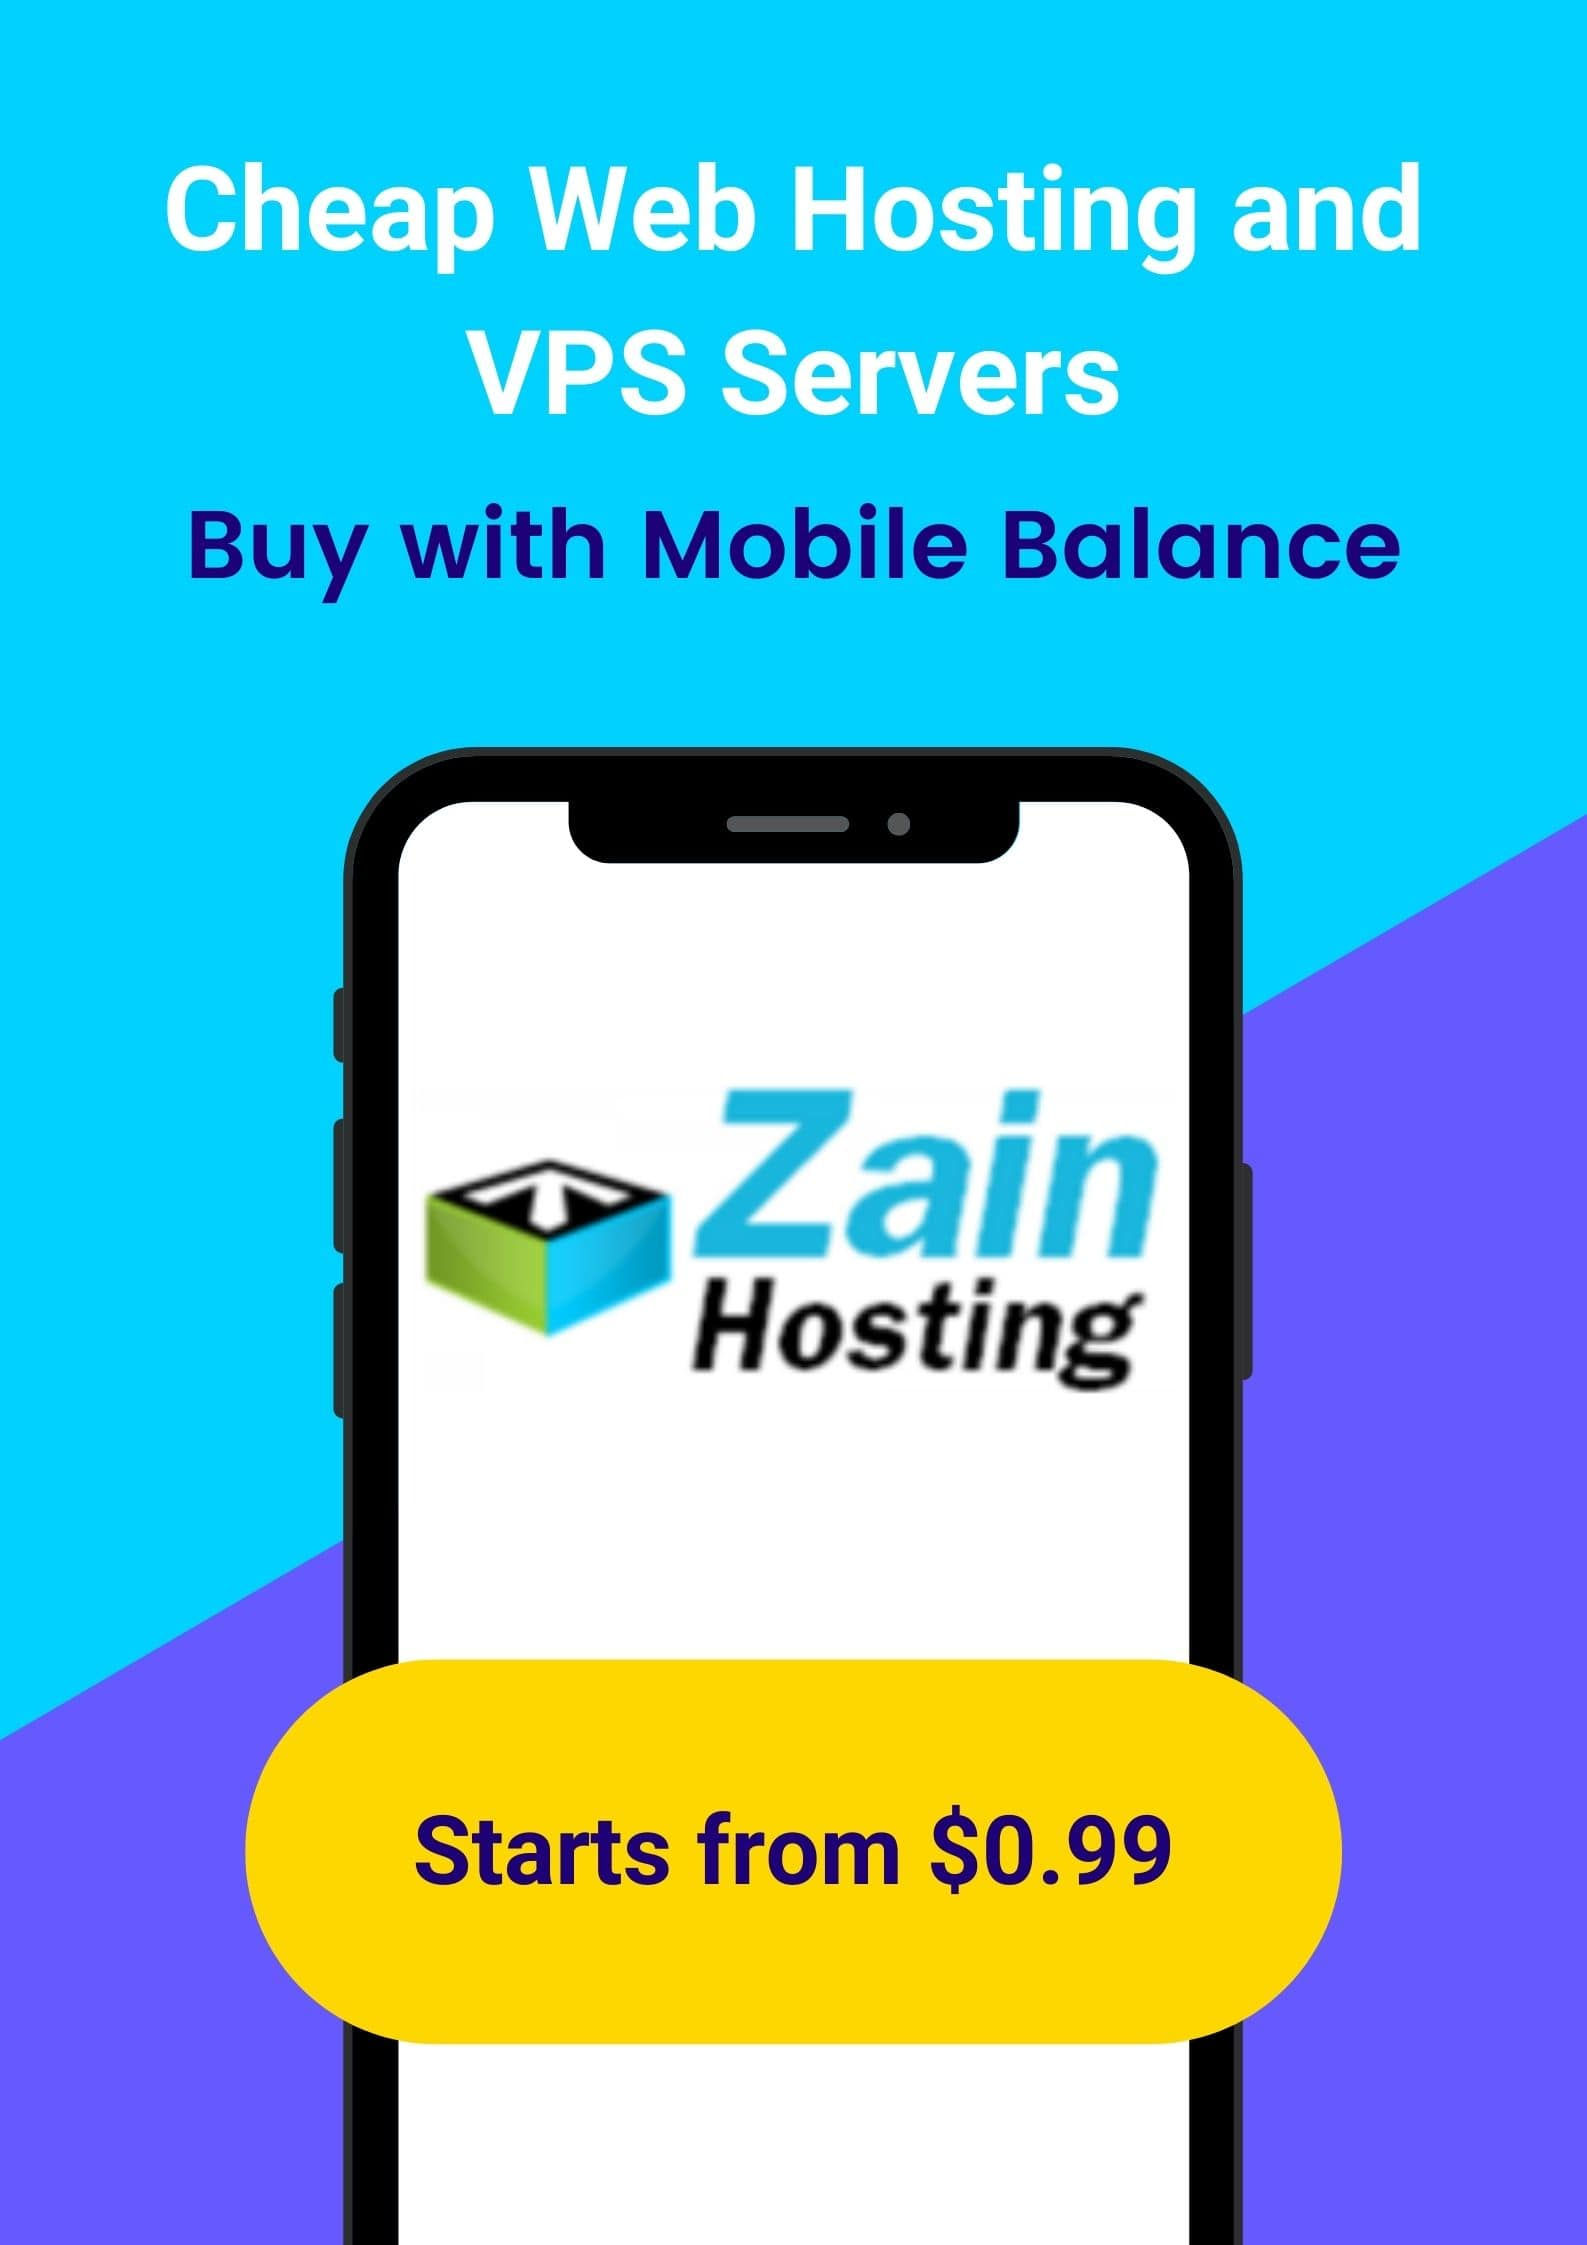 Buy Cheap Web Host with Mobile Balance